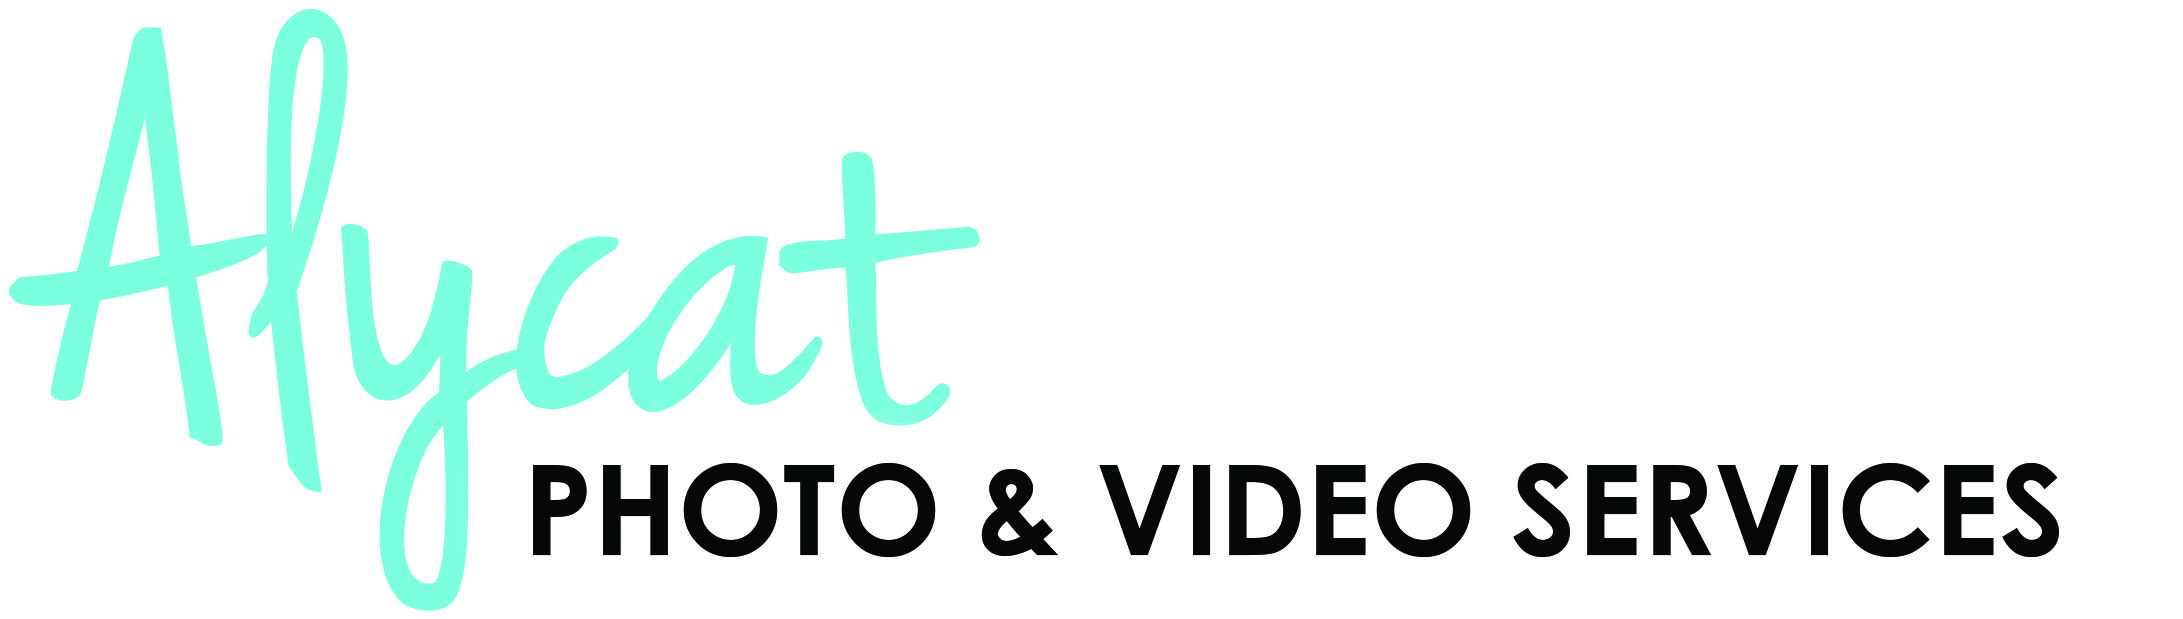 Alycat Photo & Video Services